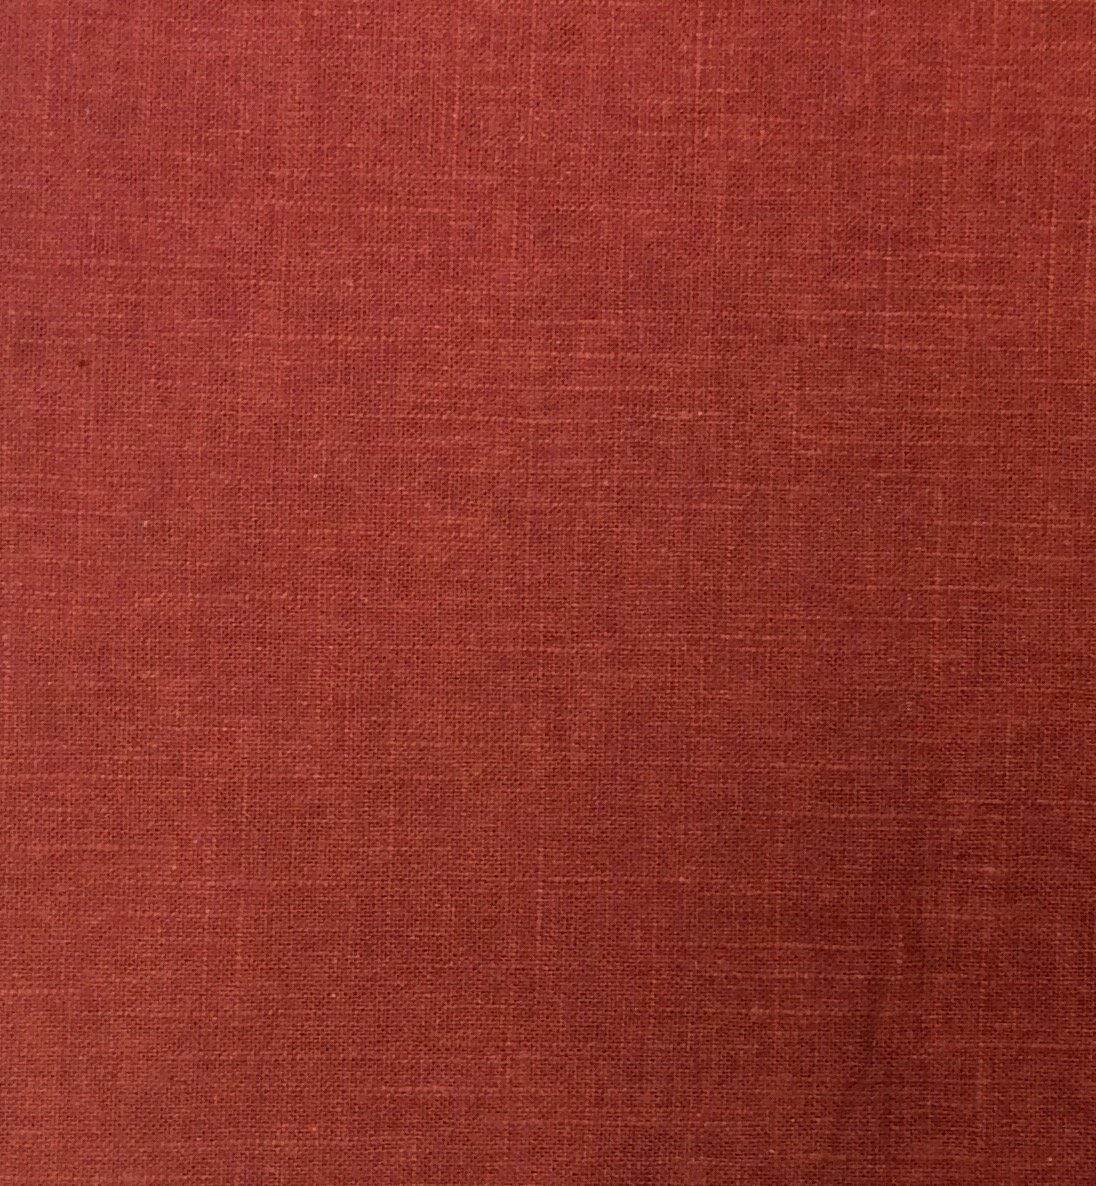 Rust Orange Linen Viscose Drapery Home Decor Fabric NL40